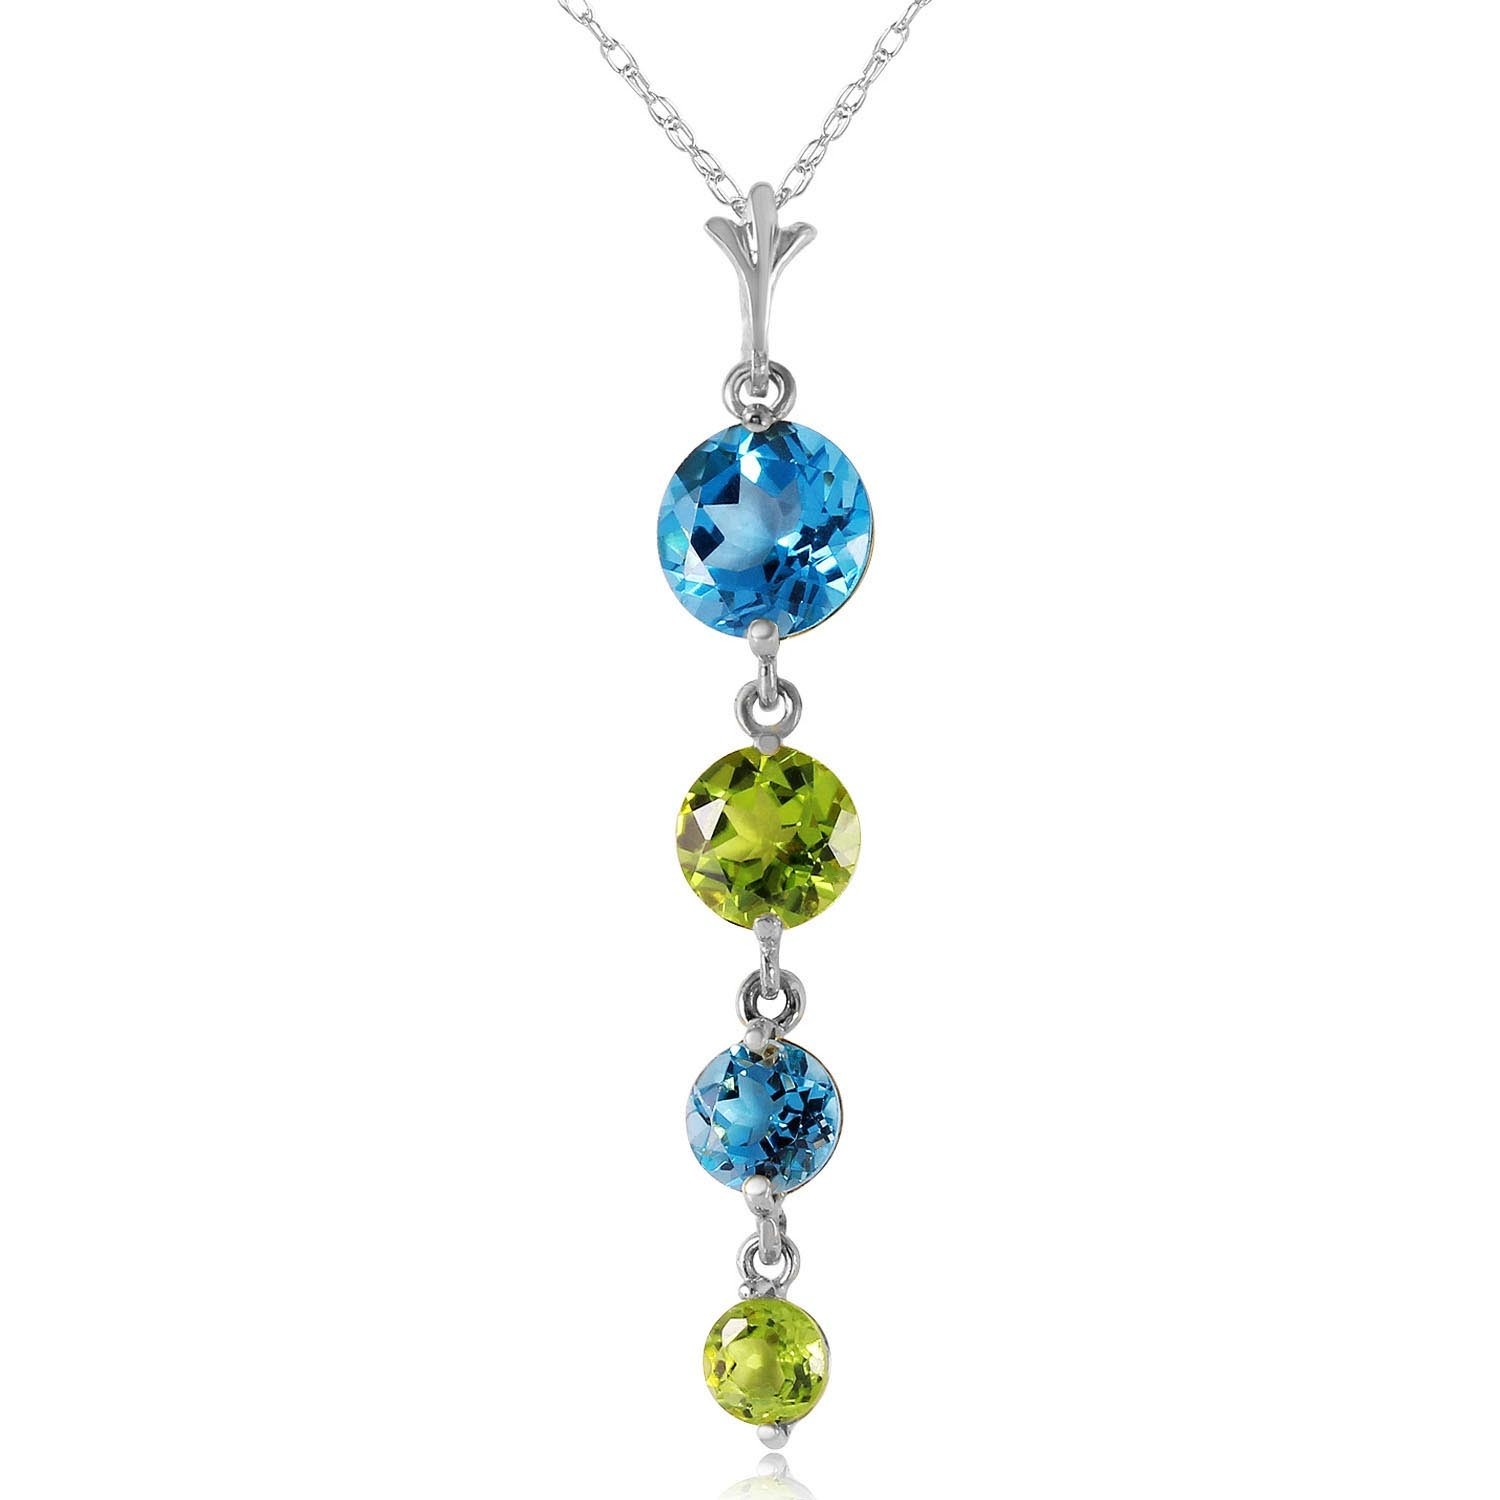 Blue Topaz & Peridot Pendant Necklace